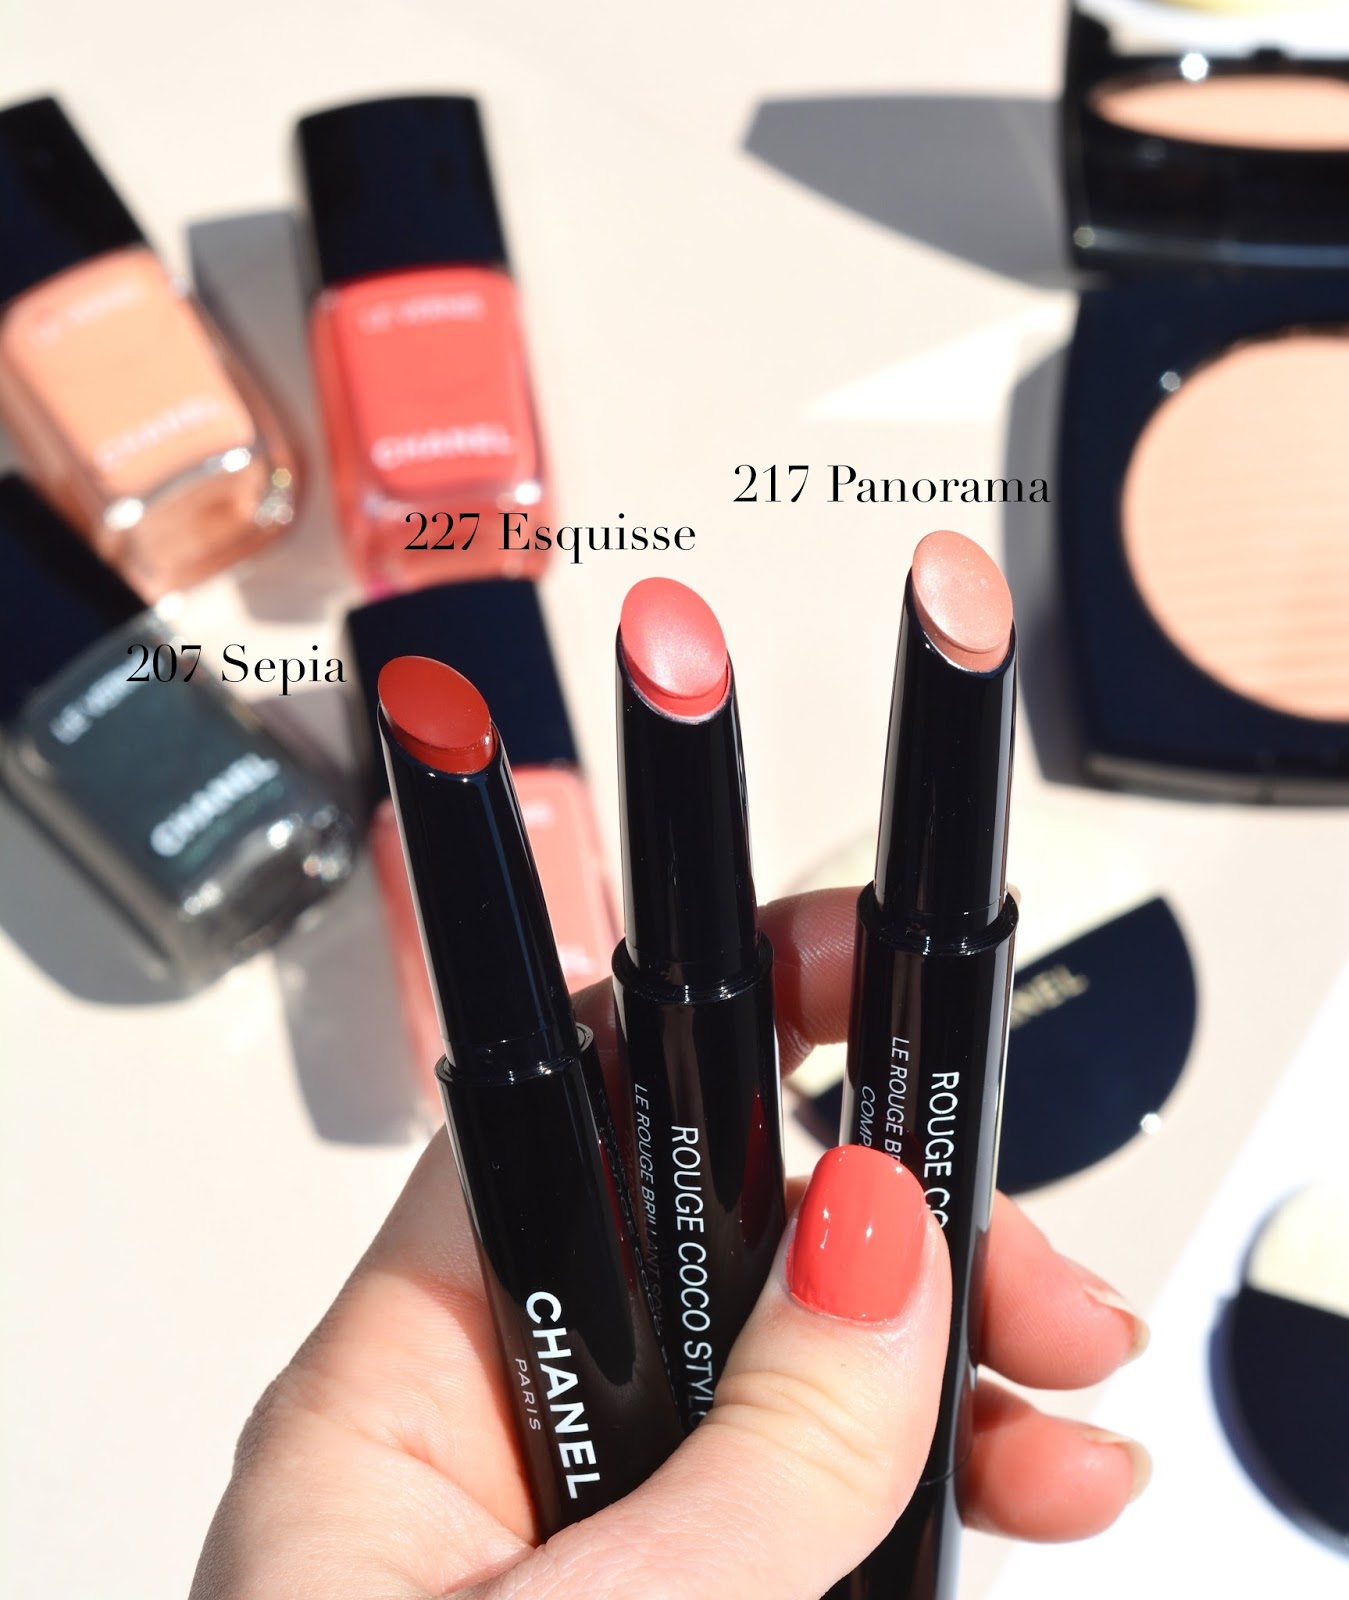 Beauty marker chanel rouge coco lipsticks review and swatches - Chanel Summer 2017 Cruise Collection Makeup Review Swatches Rouge Coco Stylo Panorama Esquisse Sepia